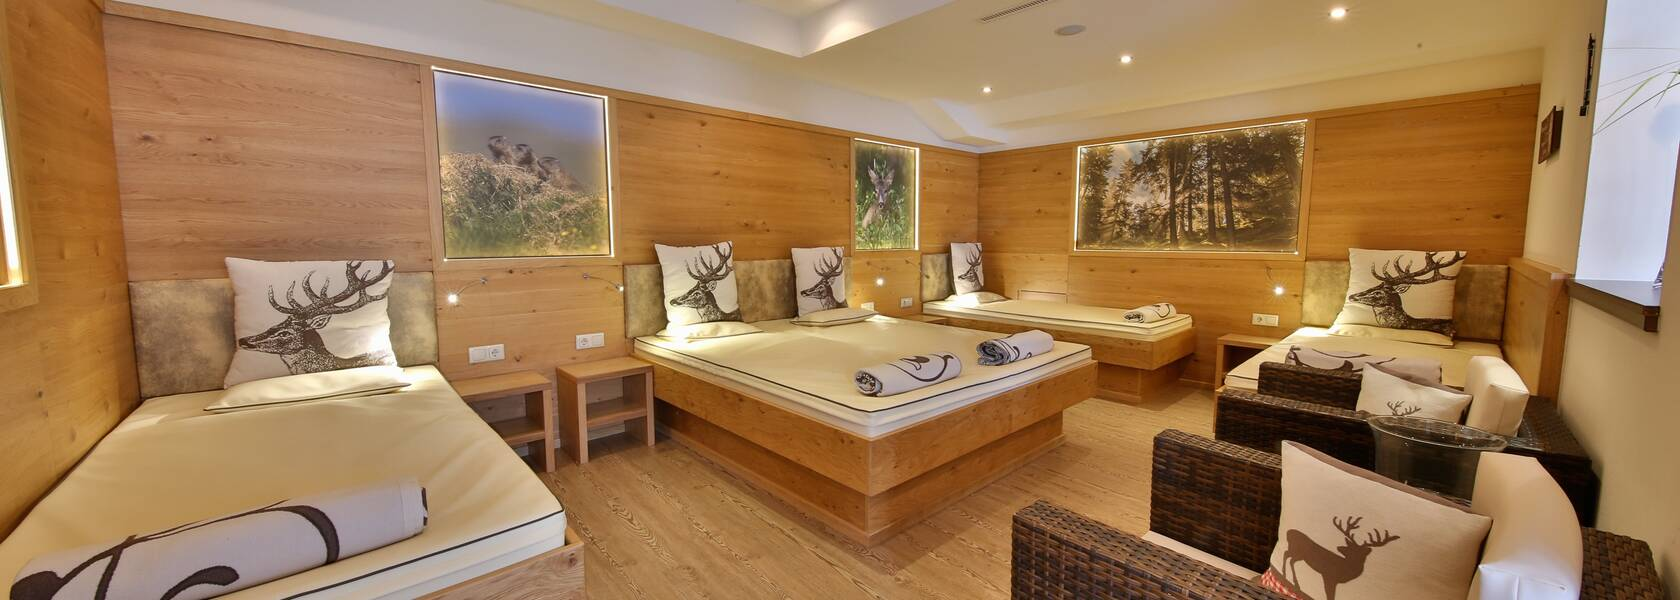 water bed relaxation area